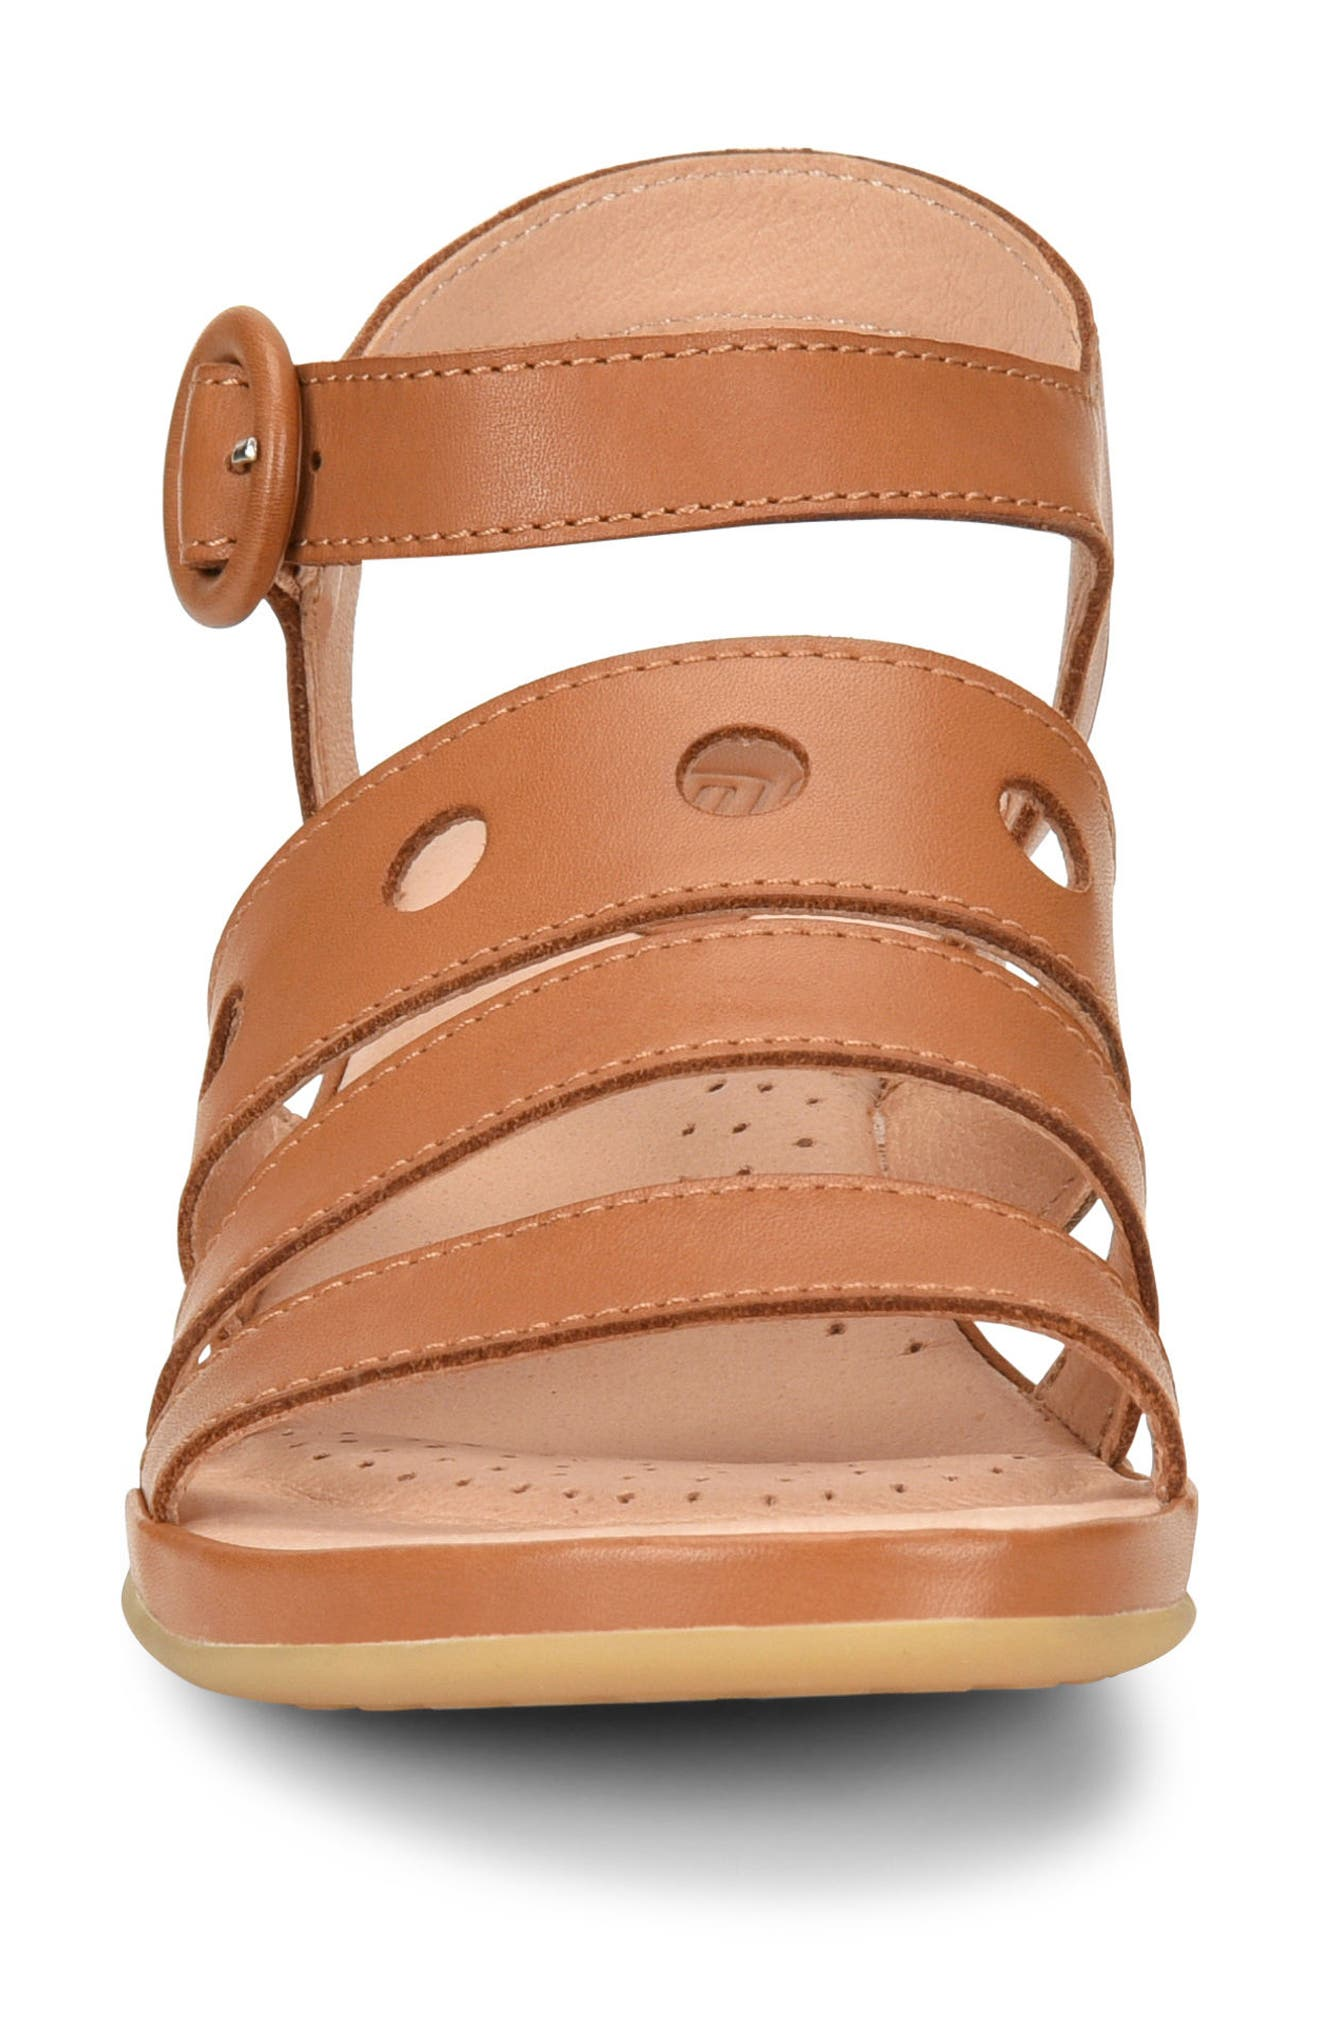 Becka Sandal,                             Alternate thumbnail 4, color,                             Brown Leather